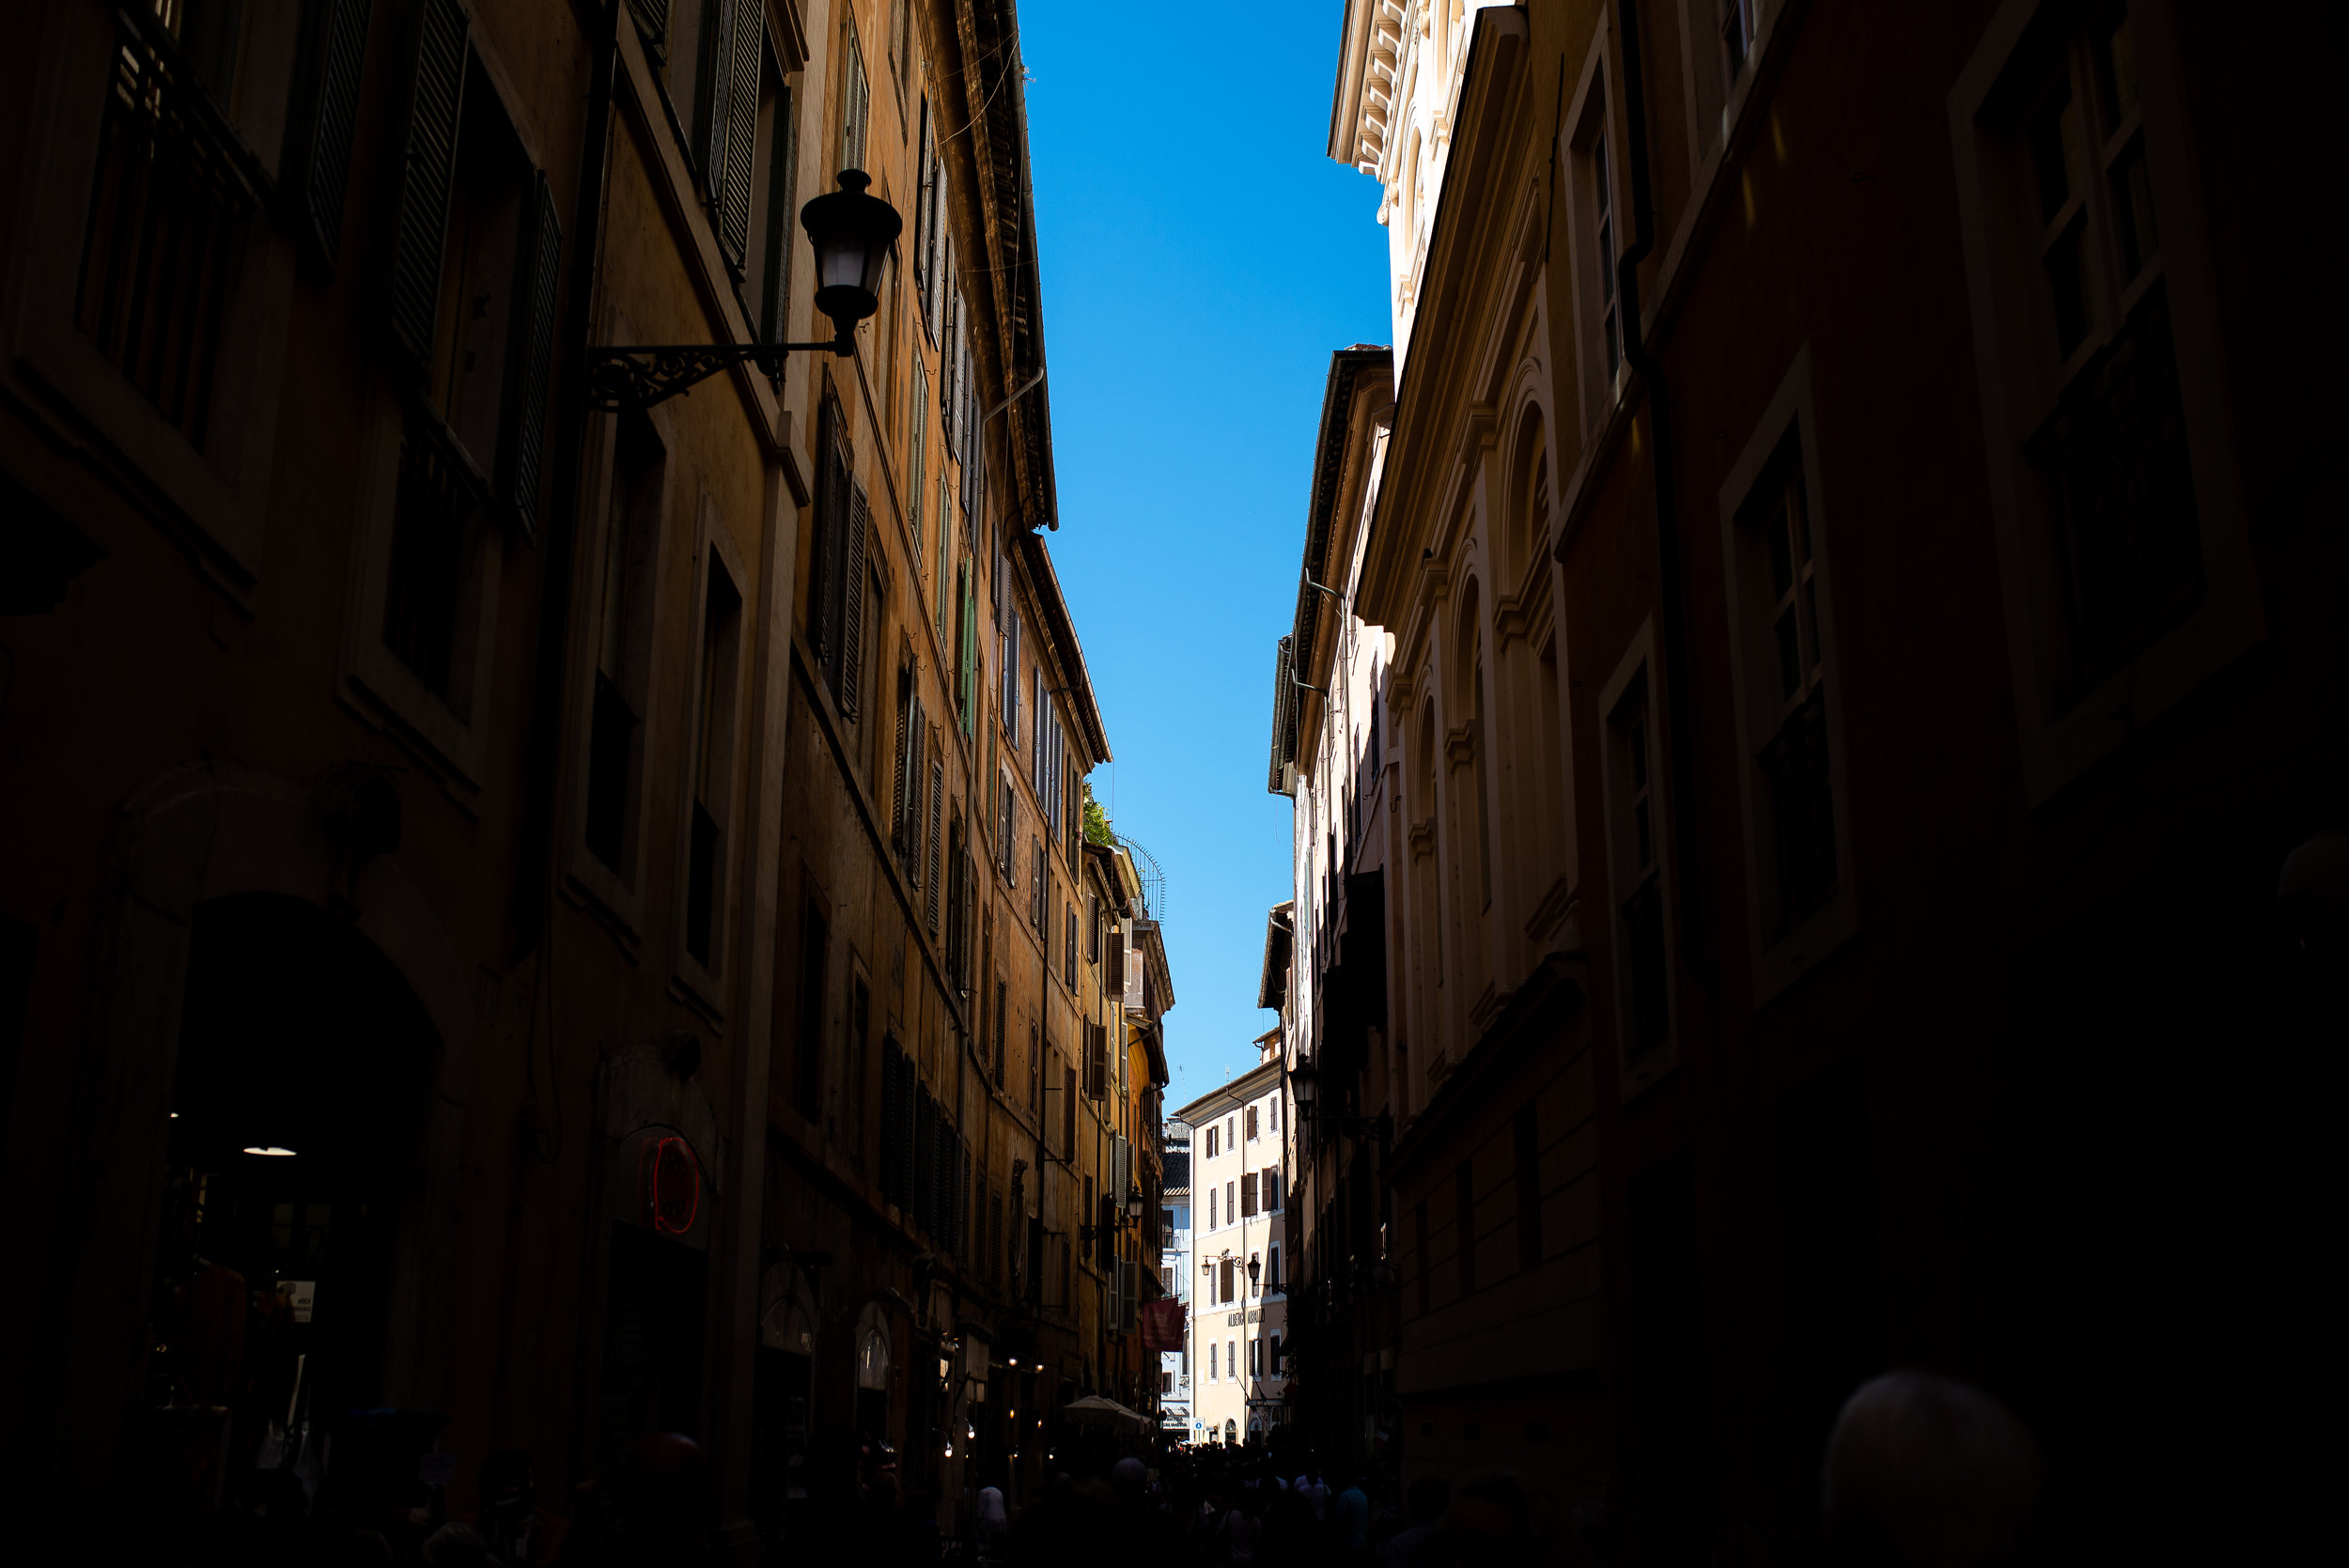 Rome-www.danielrobinsonphotography.co.uk-11.jpg